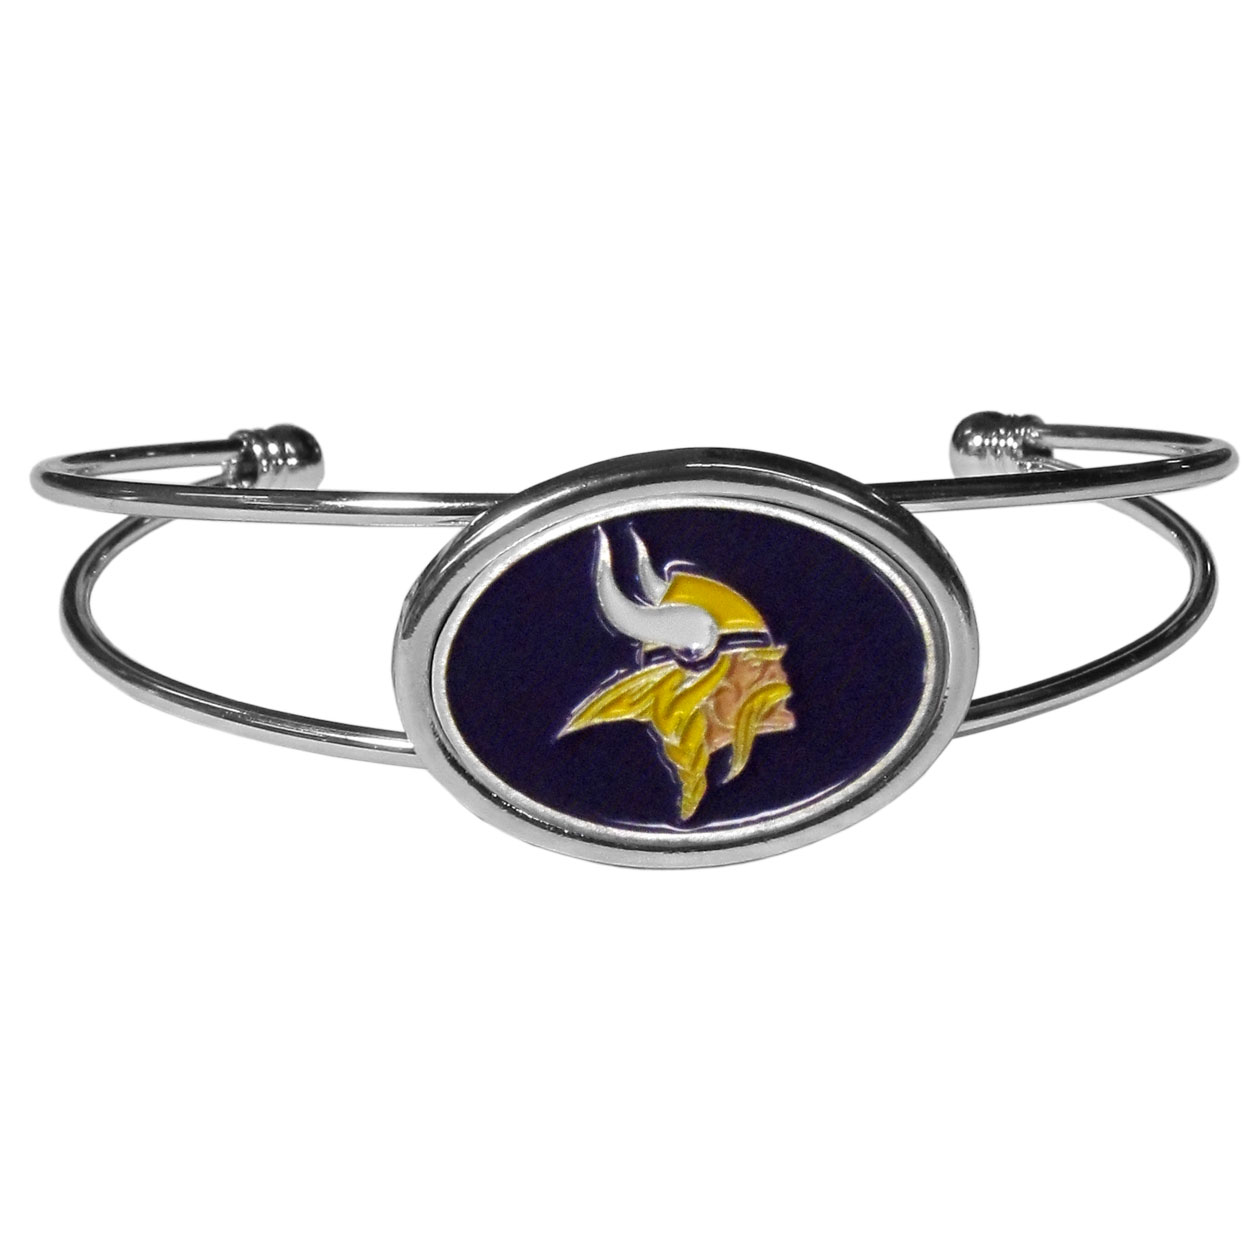 Minnesota Vikings Cuff Bracelet - These comfortable and fashionable double-bar cuff bracelets feature a 1 inch metal Minnesota Vikings inset logo with enameled detail.